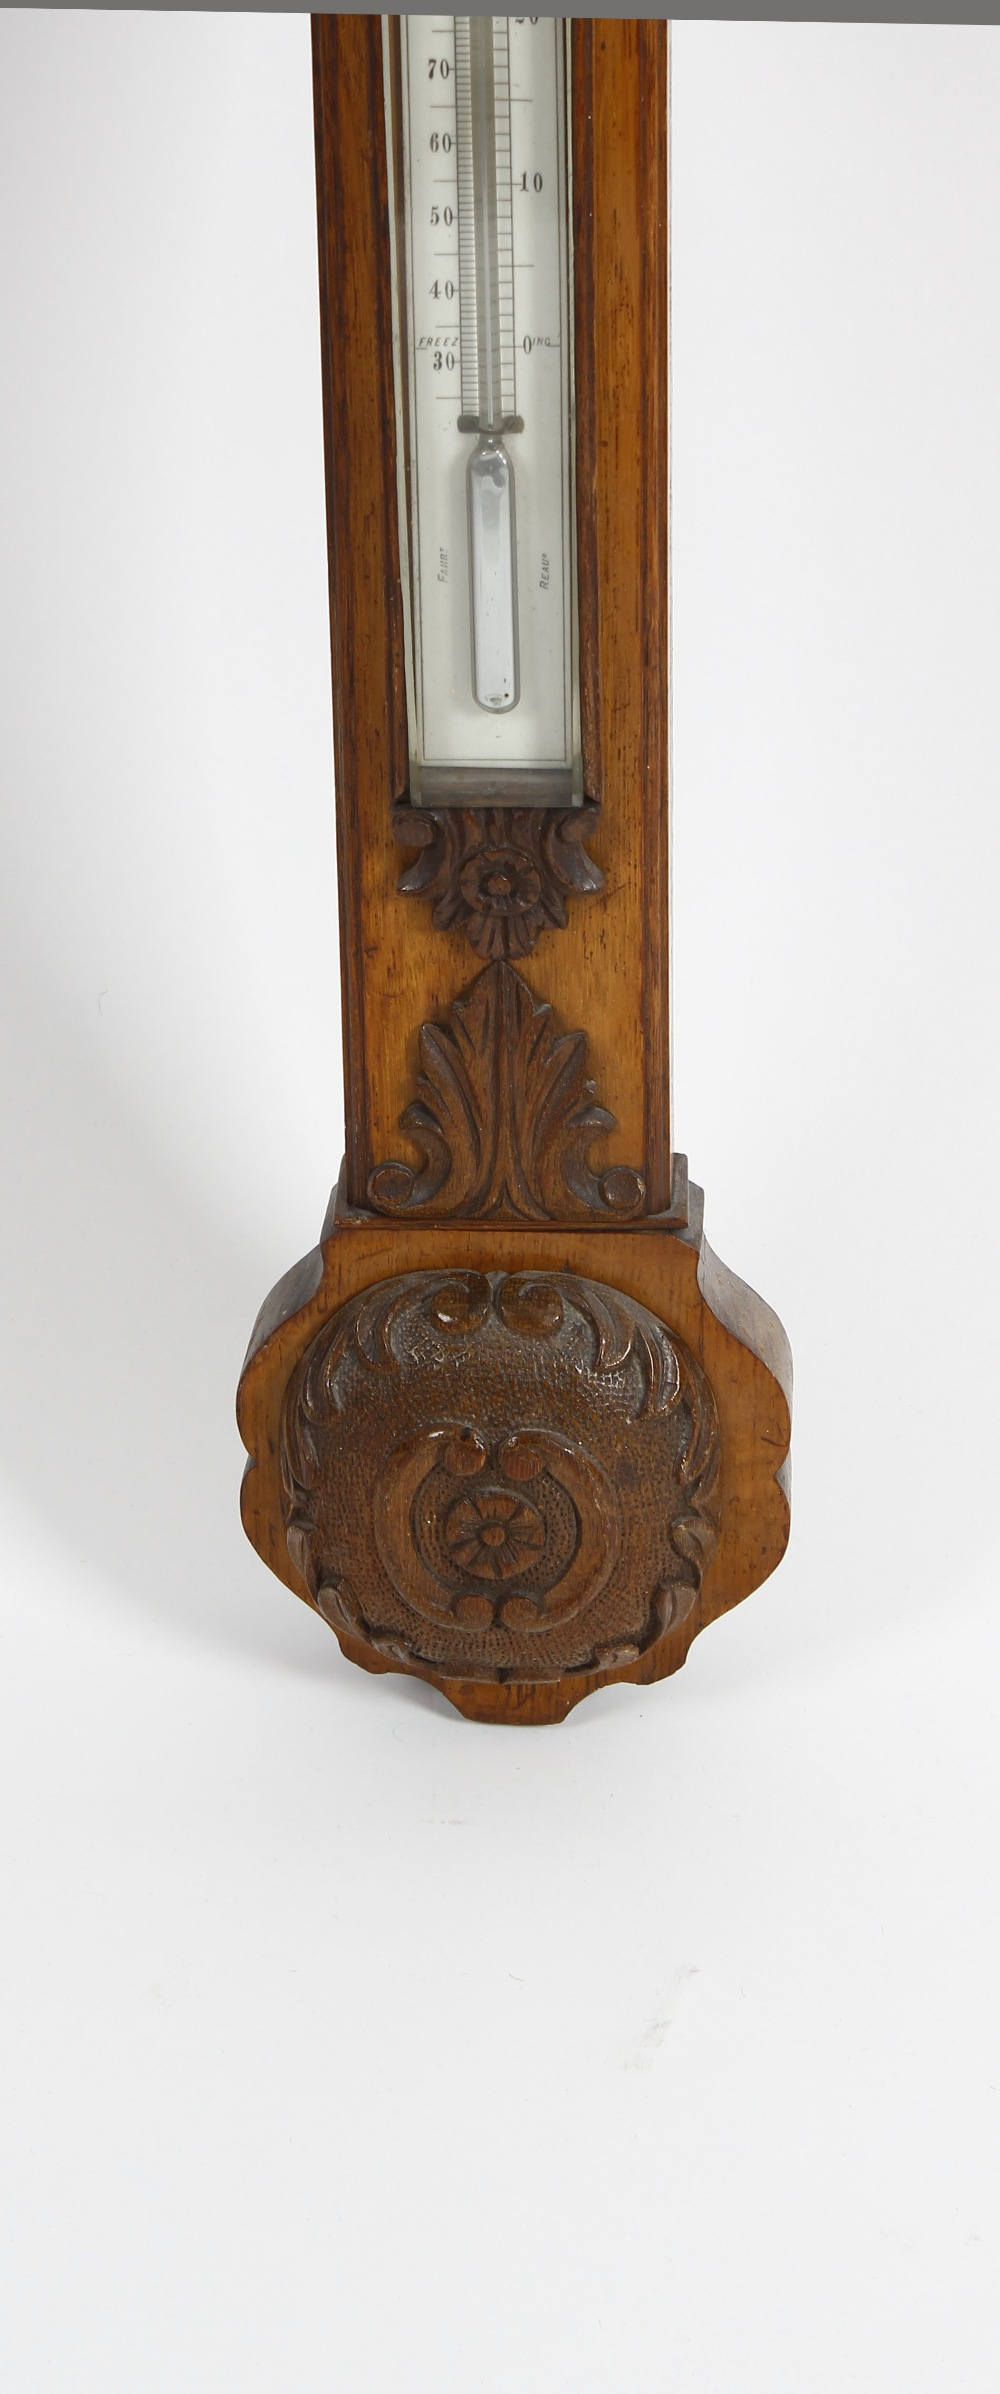 Lot 817 - A late Victorian carved oak stick barometer Hill, Birmingham The break-arched and flowerhead-